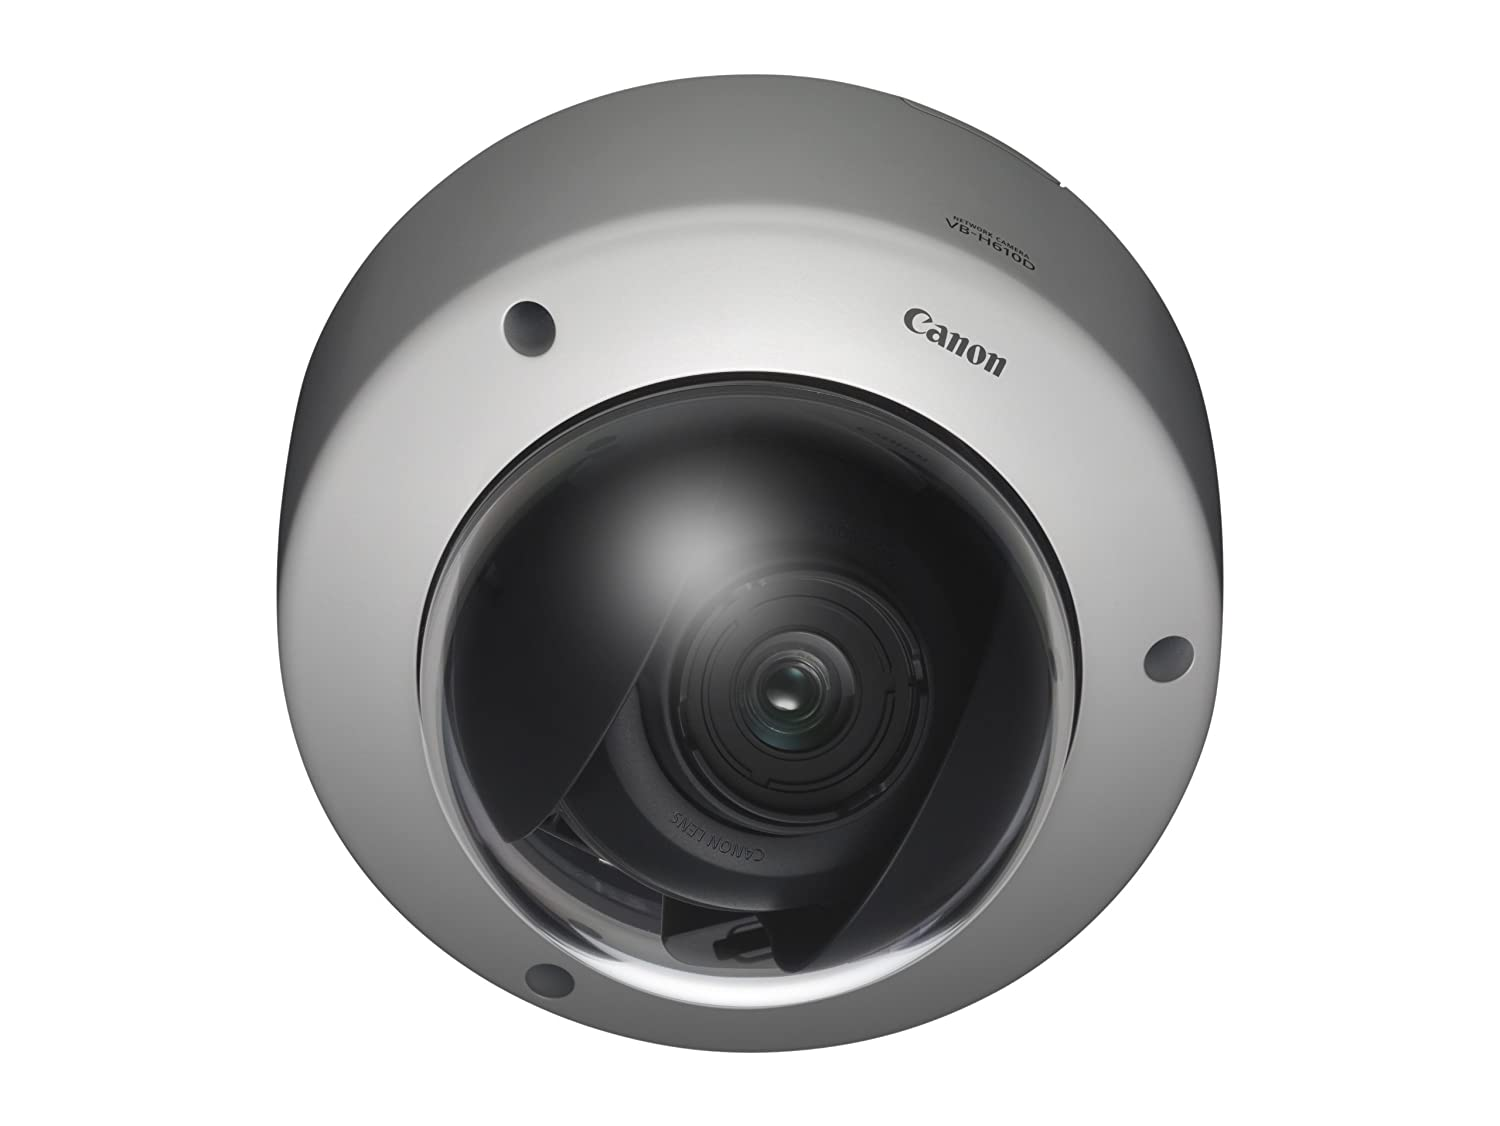 Canon VB-H610D Network Camera Windows 8 Driver Download